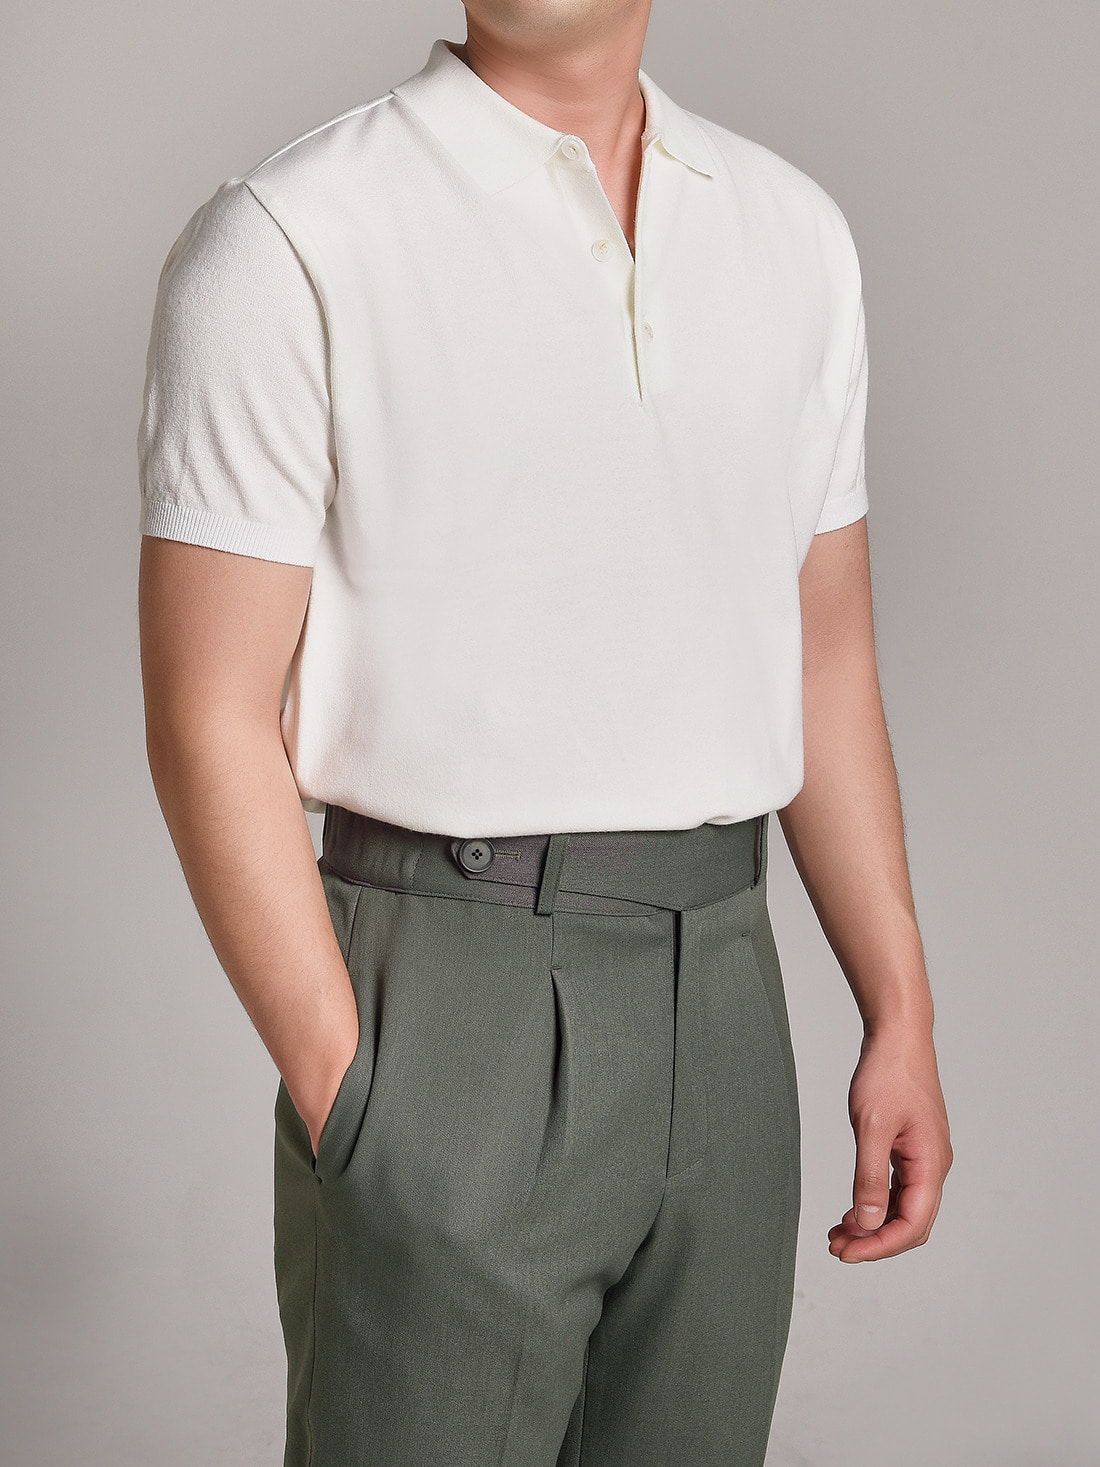 DEVERMAN[DEVERMAN]soft touch solid polo knit (white)